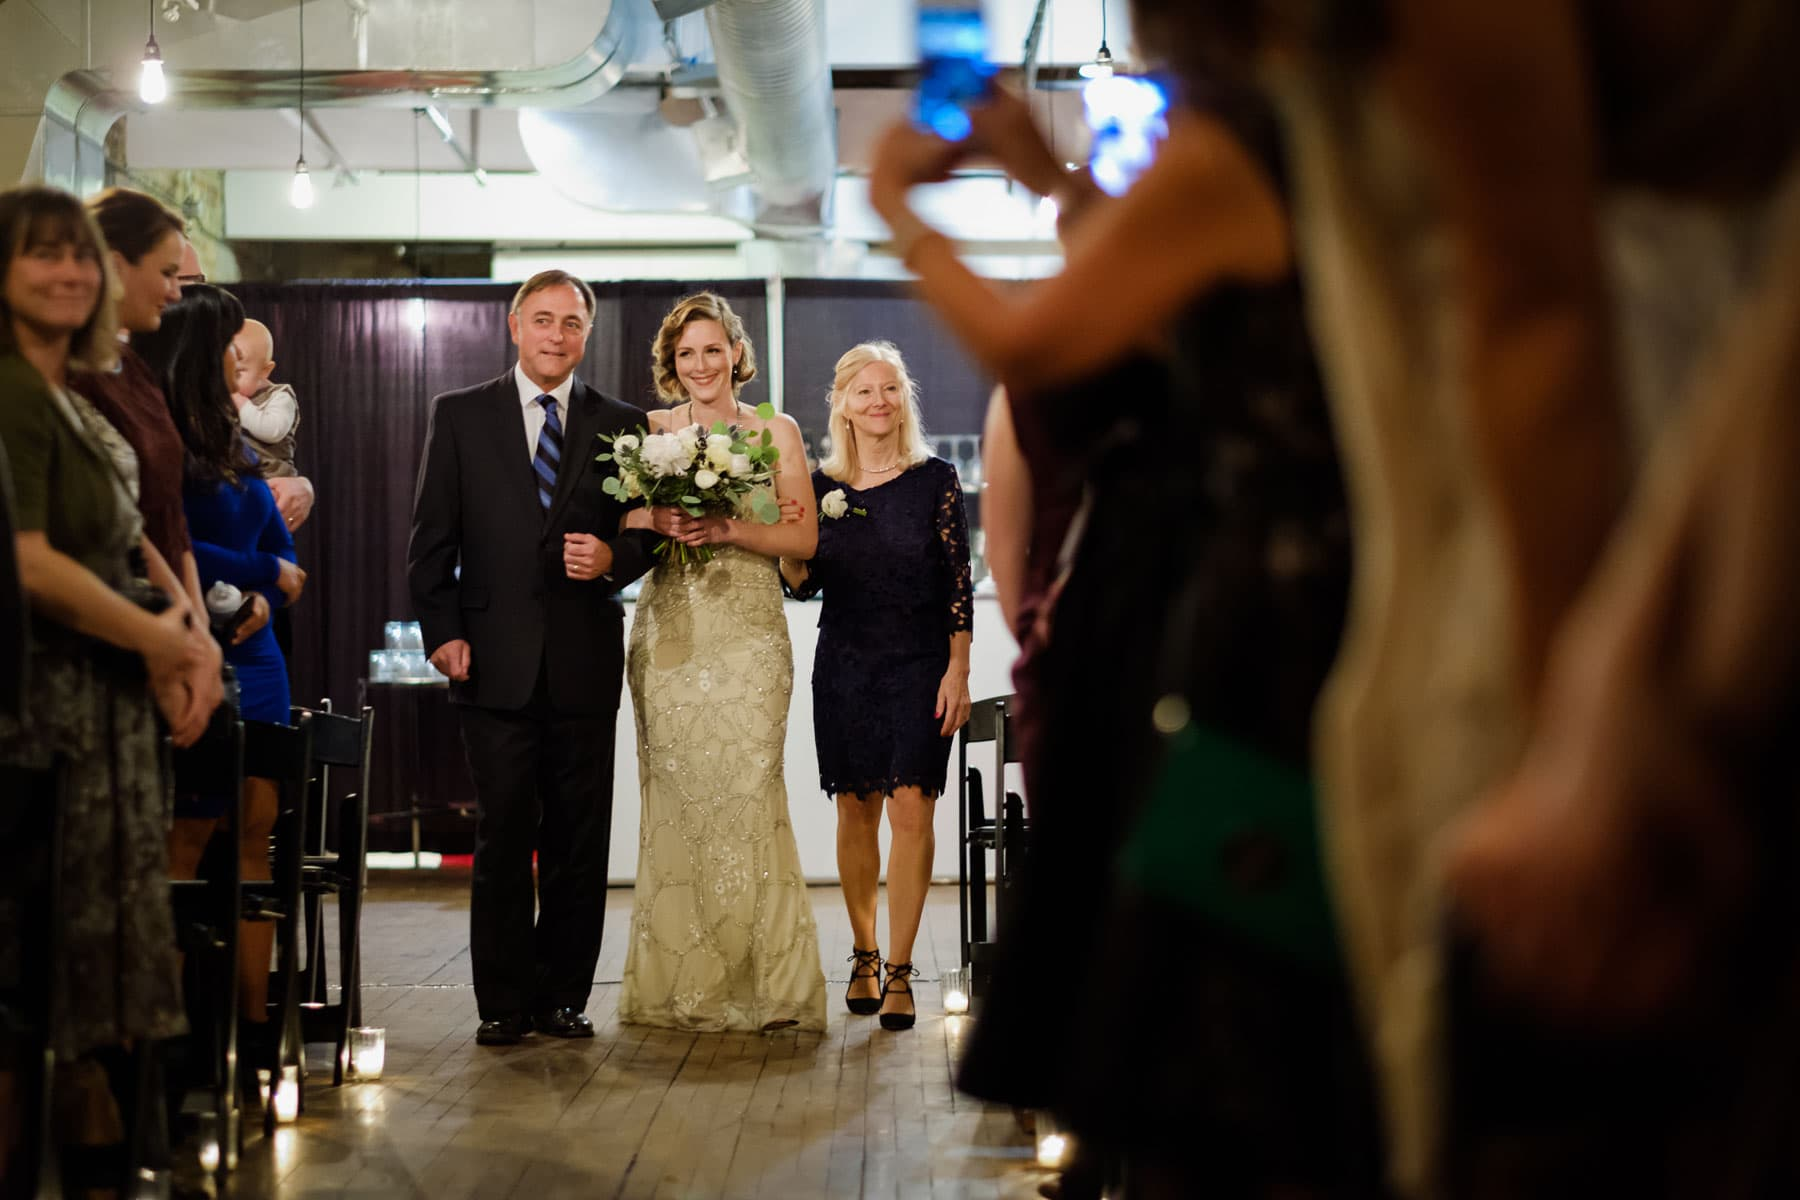 Bride is walked down aisle by both parents at The Burroughes building wedding.